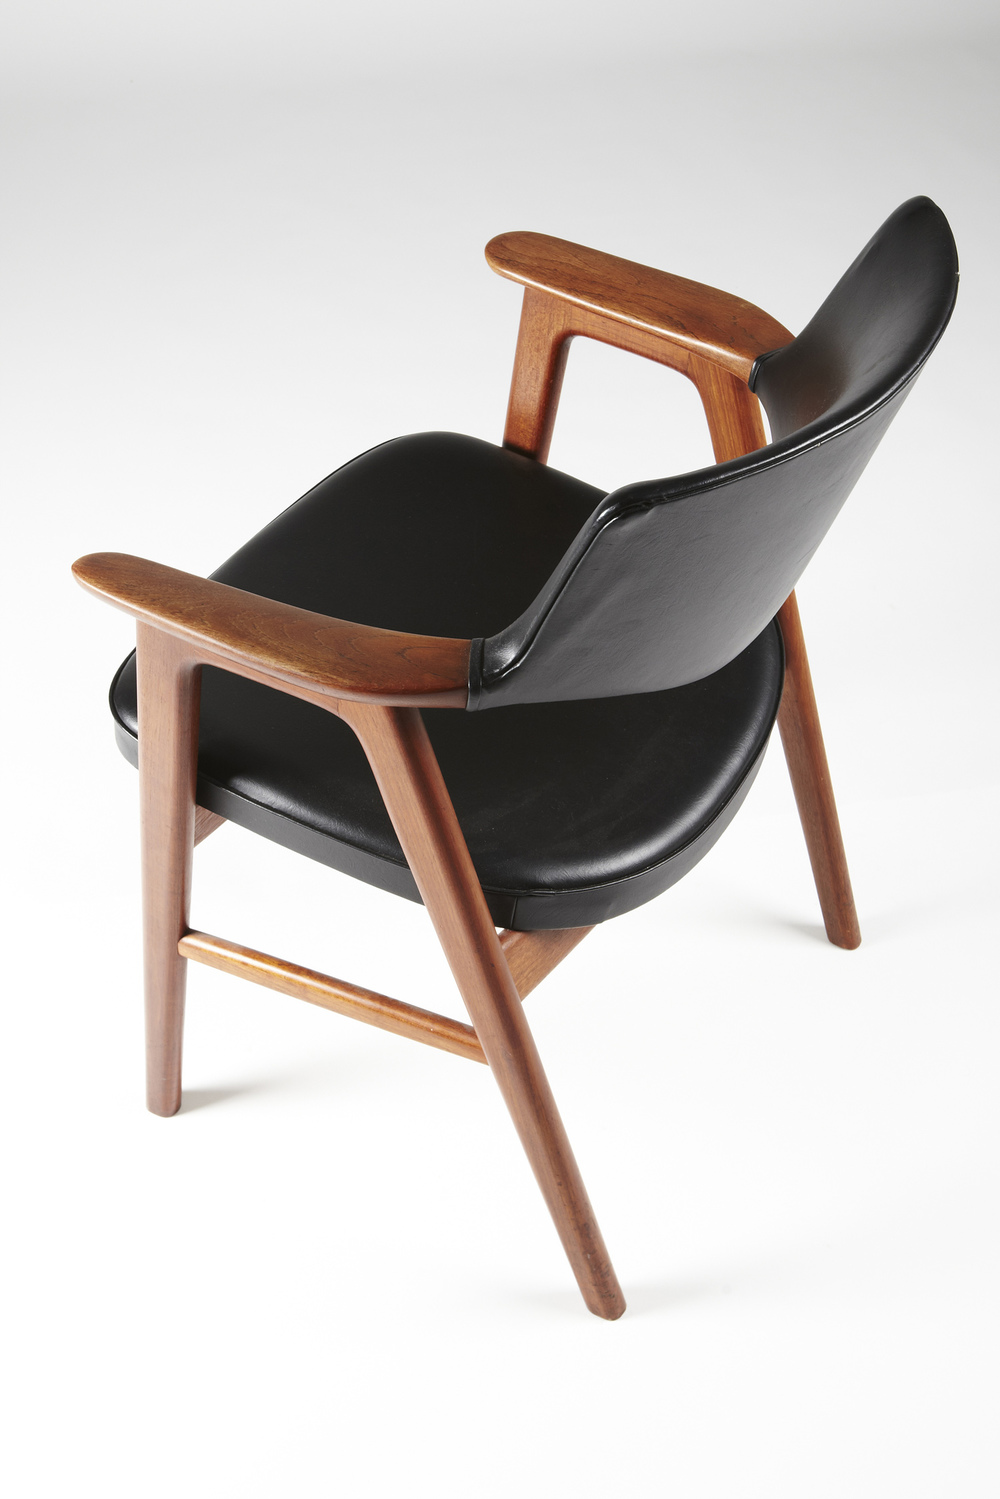 E Kierkegaard 1955 Armchair • made 1955-69 •